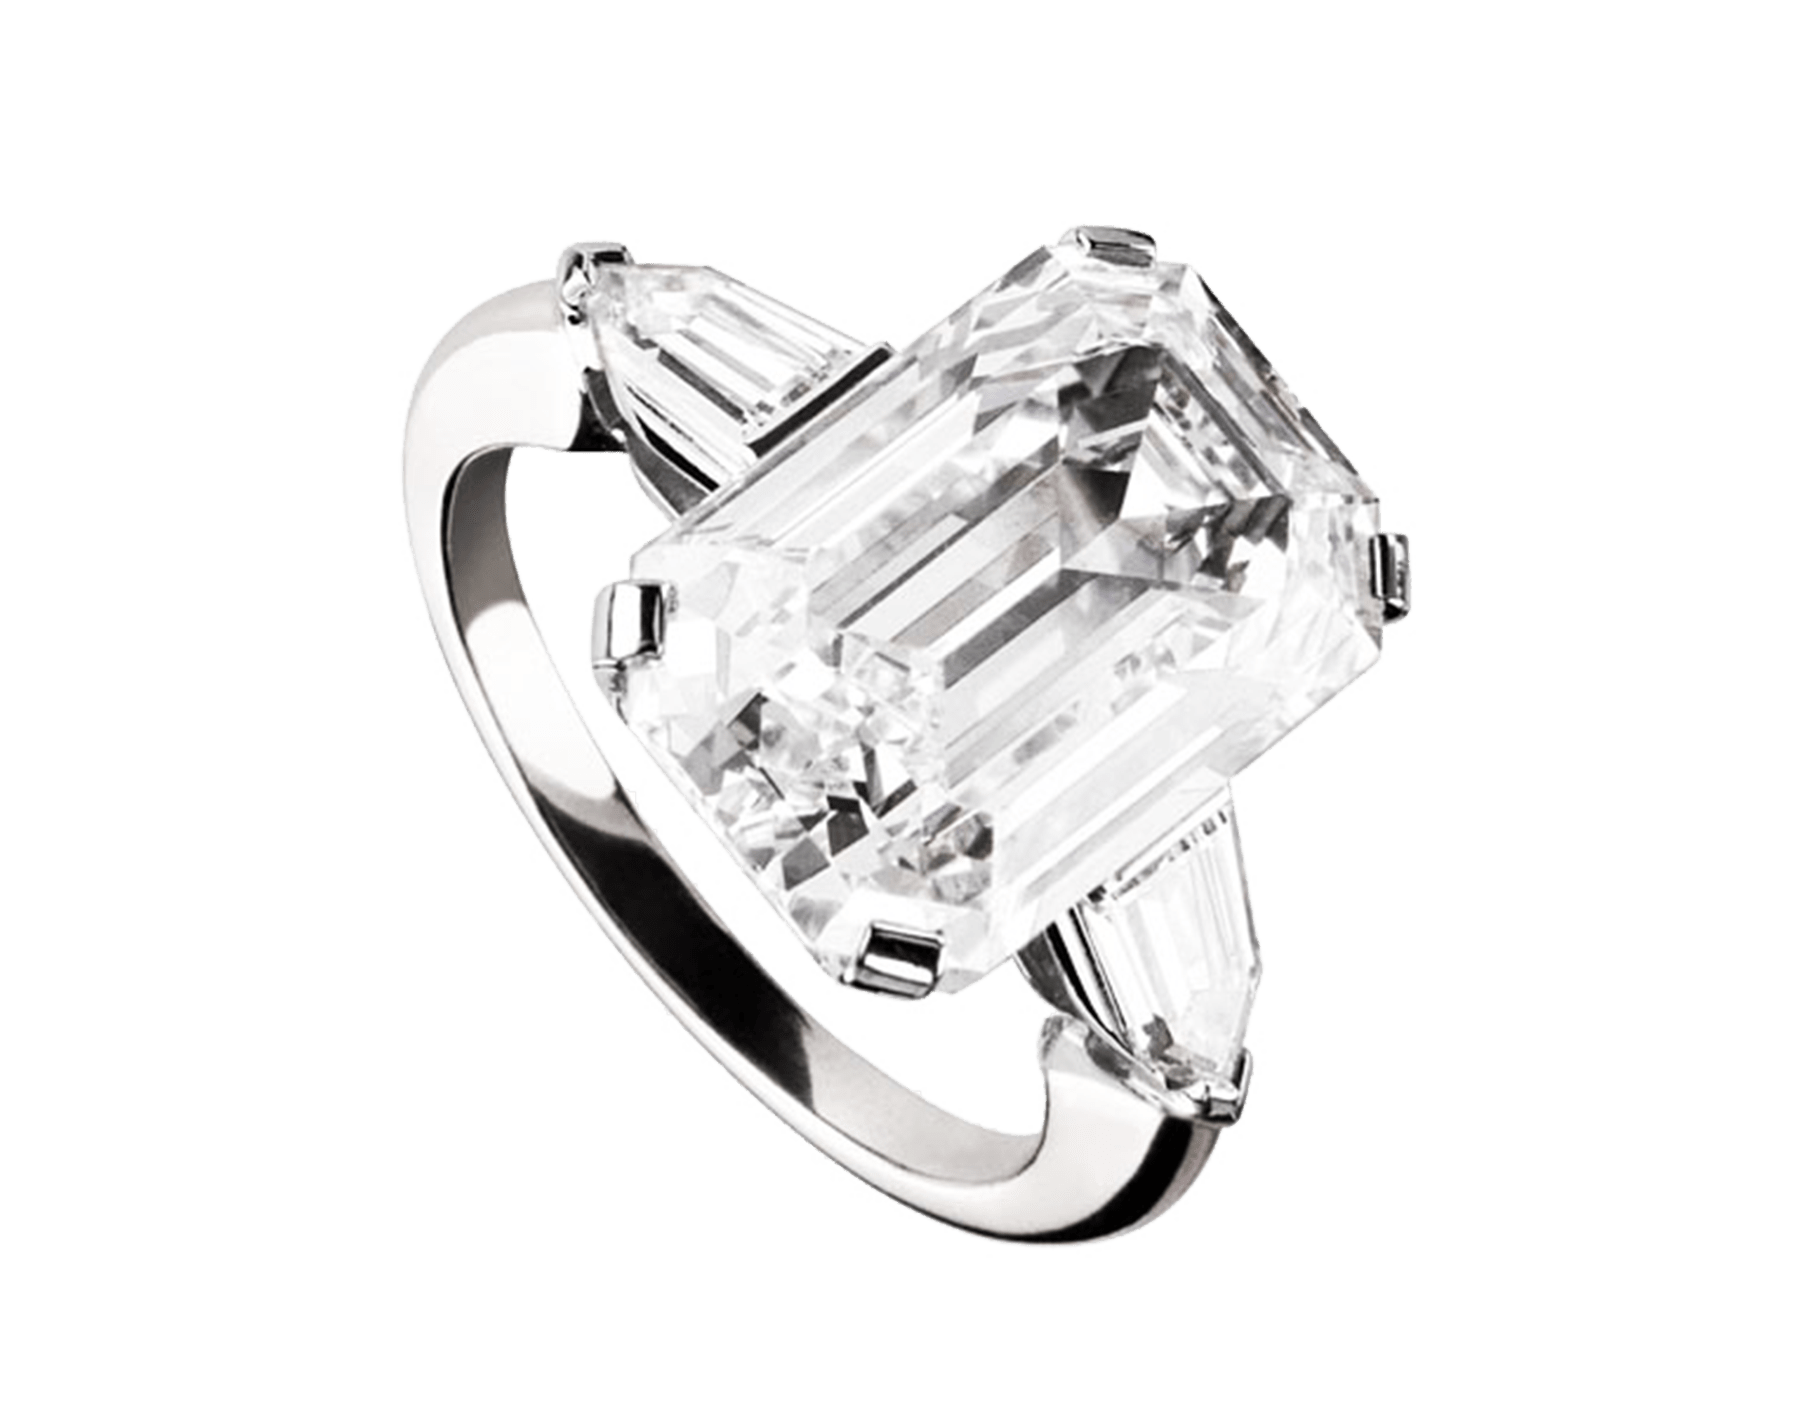 Griffe solitaire ring in platinum with emerald cut diamond and two side diamonds. Available from 1 ct. A classic setting that allows the beauty and the pureness of the solitaire diamond to assert itself 331837 image 1